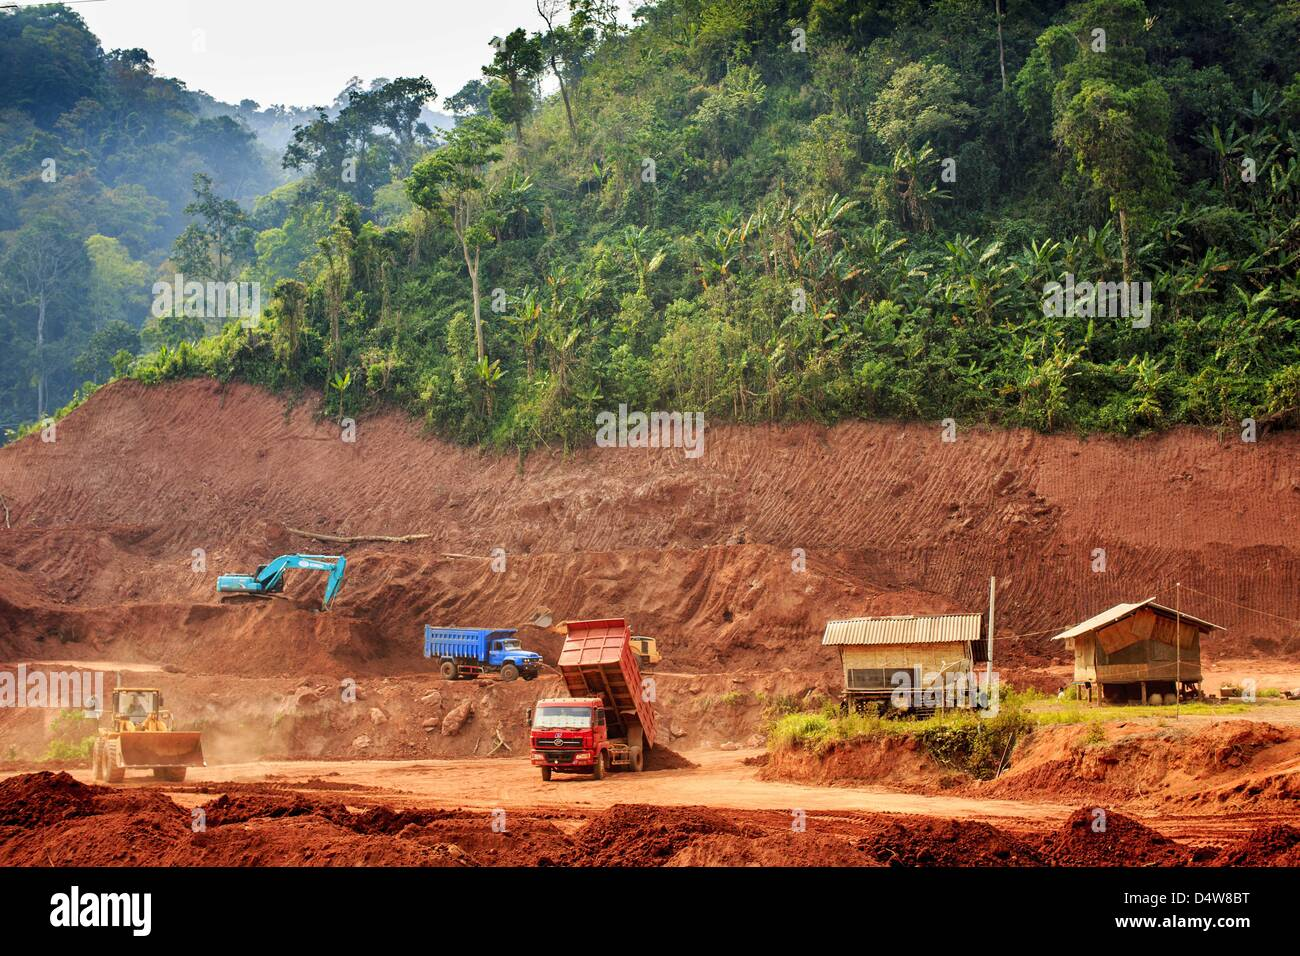 March 14, 2013 - Boten, Oudomxay, Laos - Construction equipment works on a car park being built to accommodate traffic Stock Photo